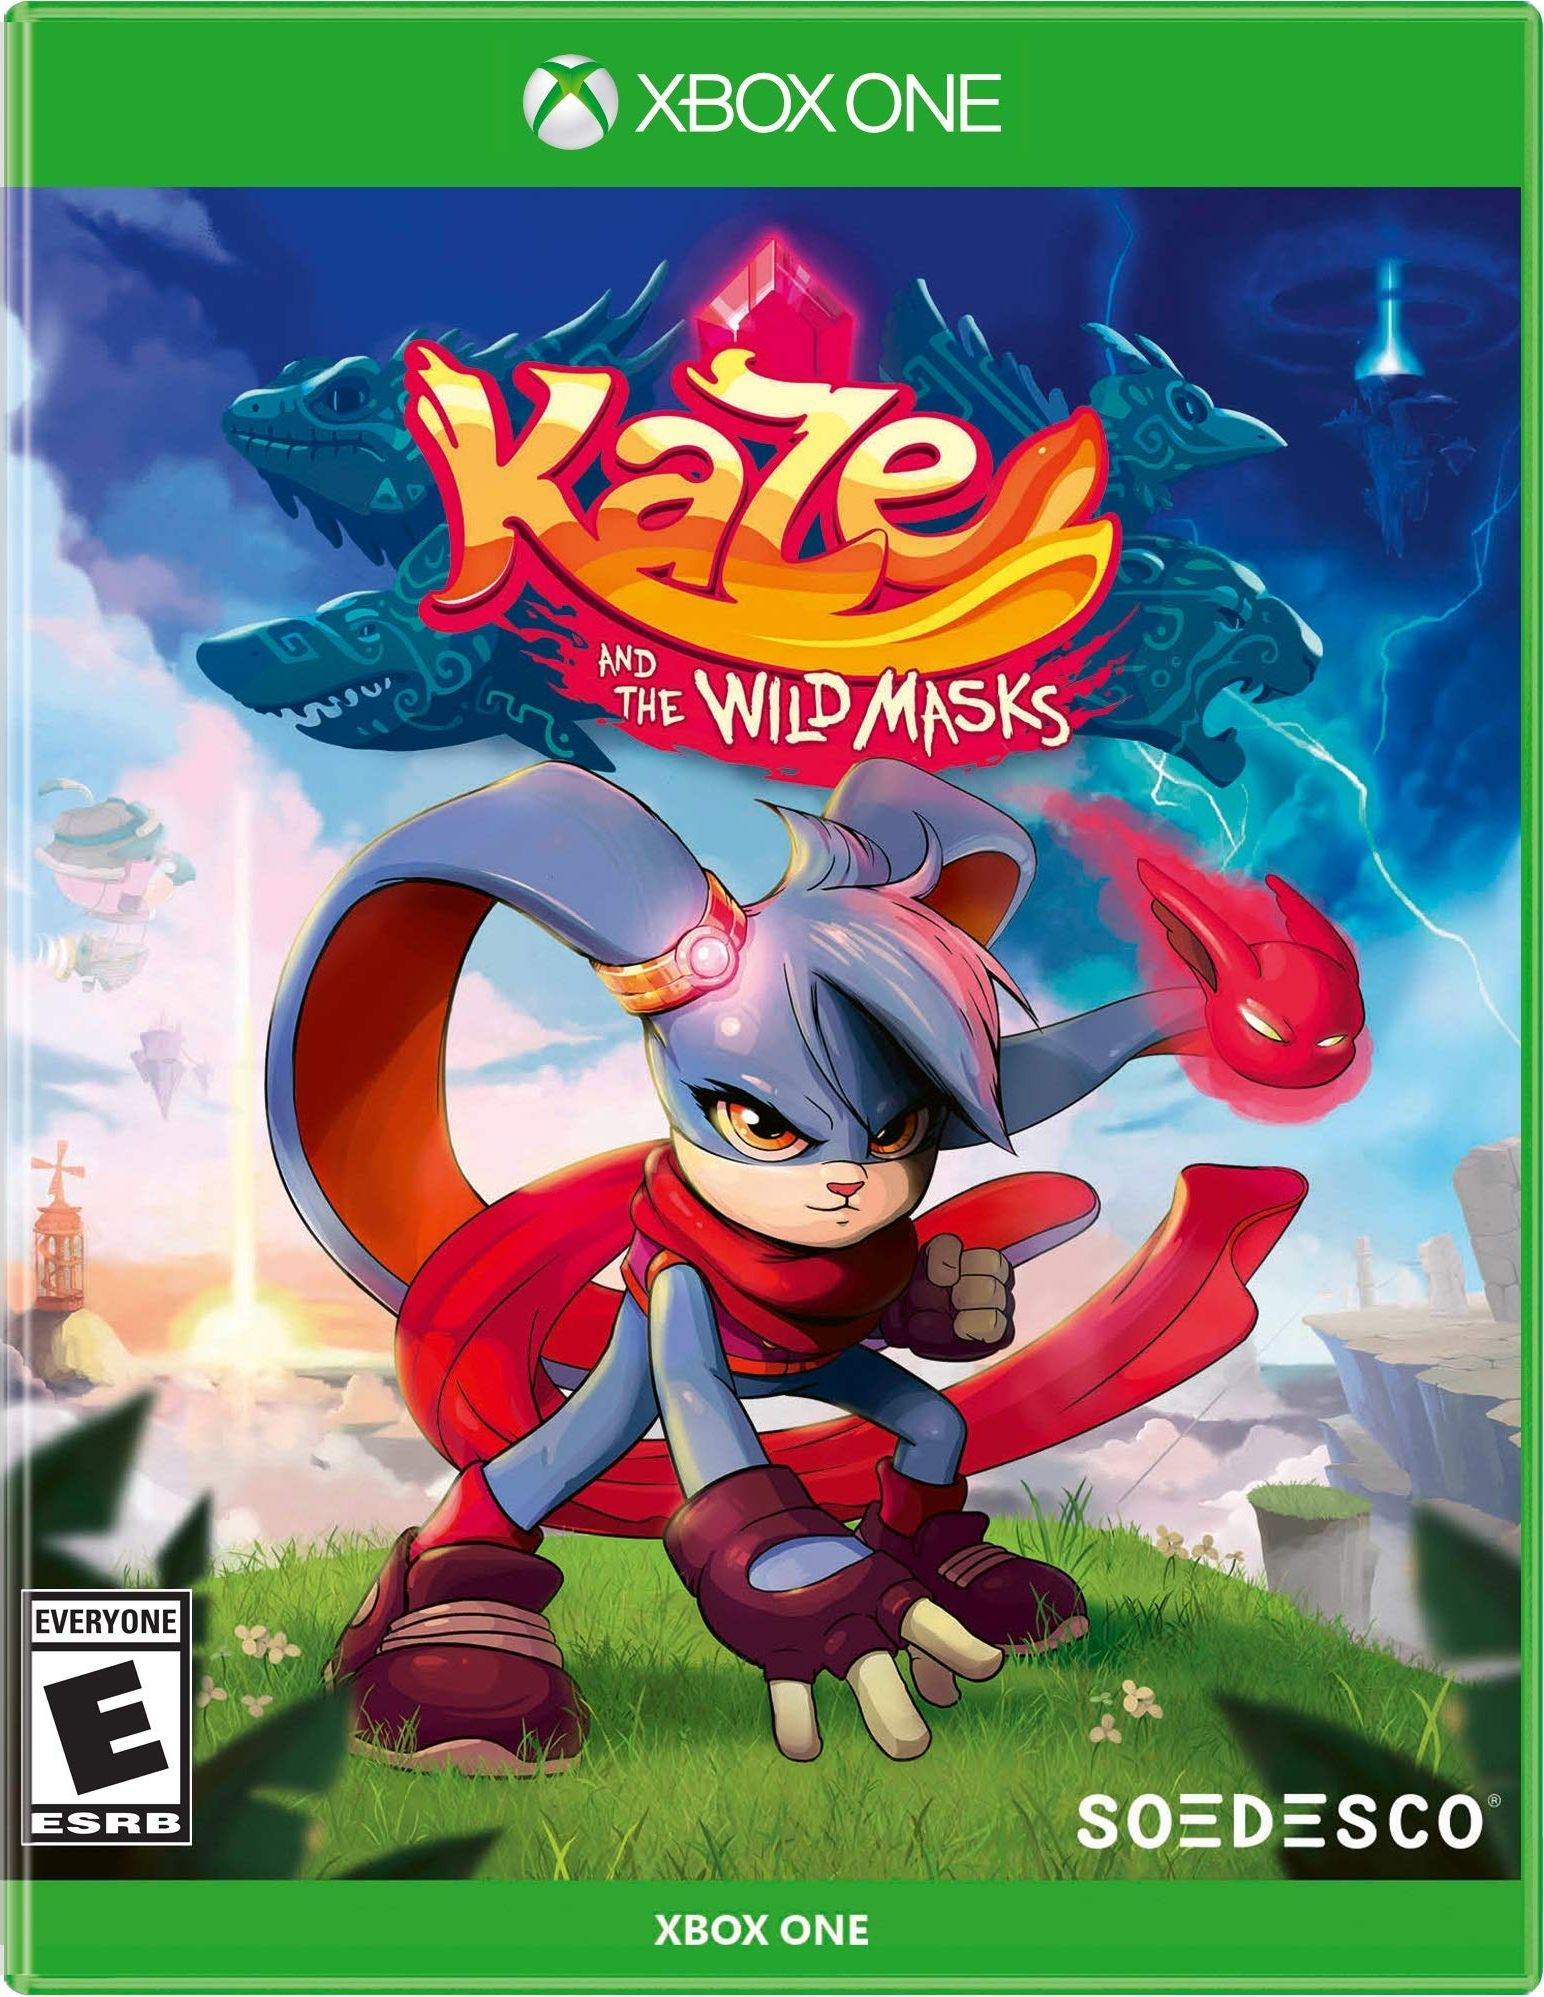 Kaze and the Wild Masks in 2020 Fun to be one, Xbox one